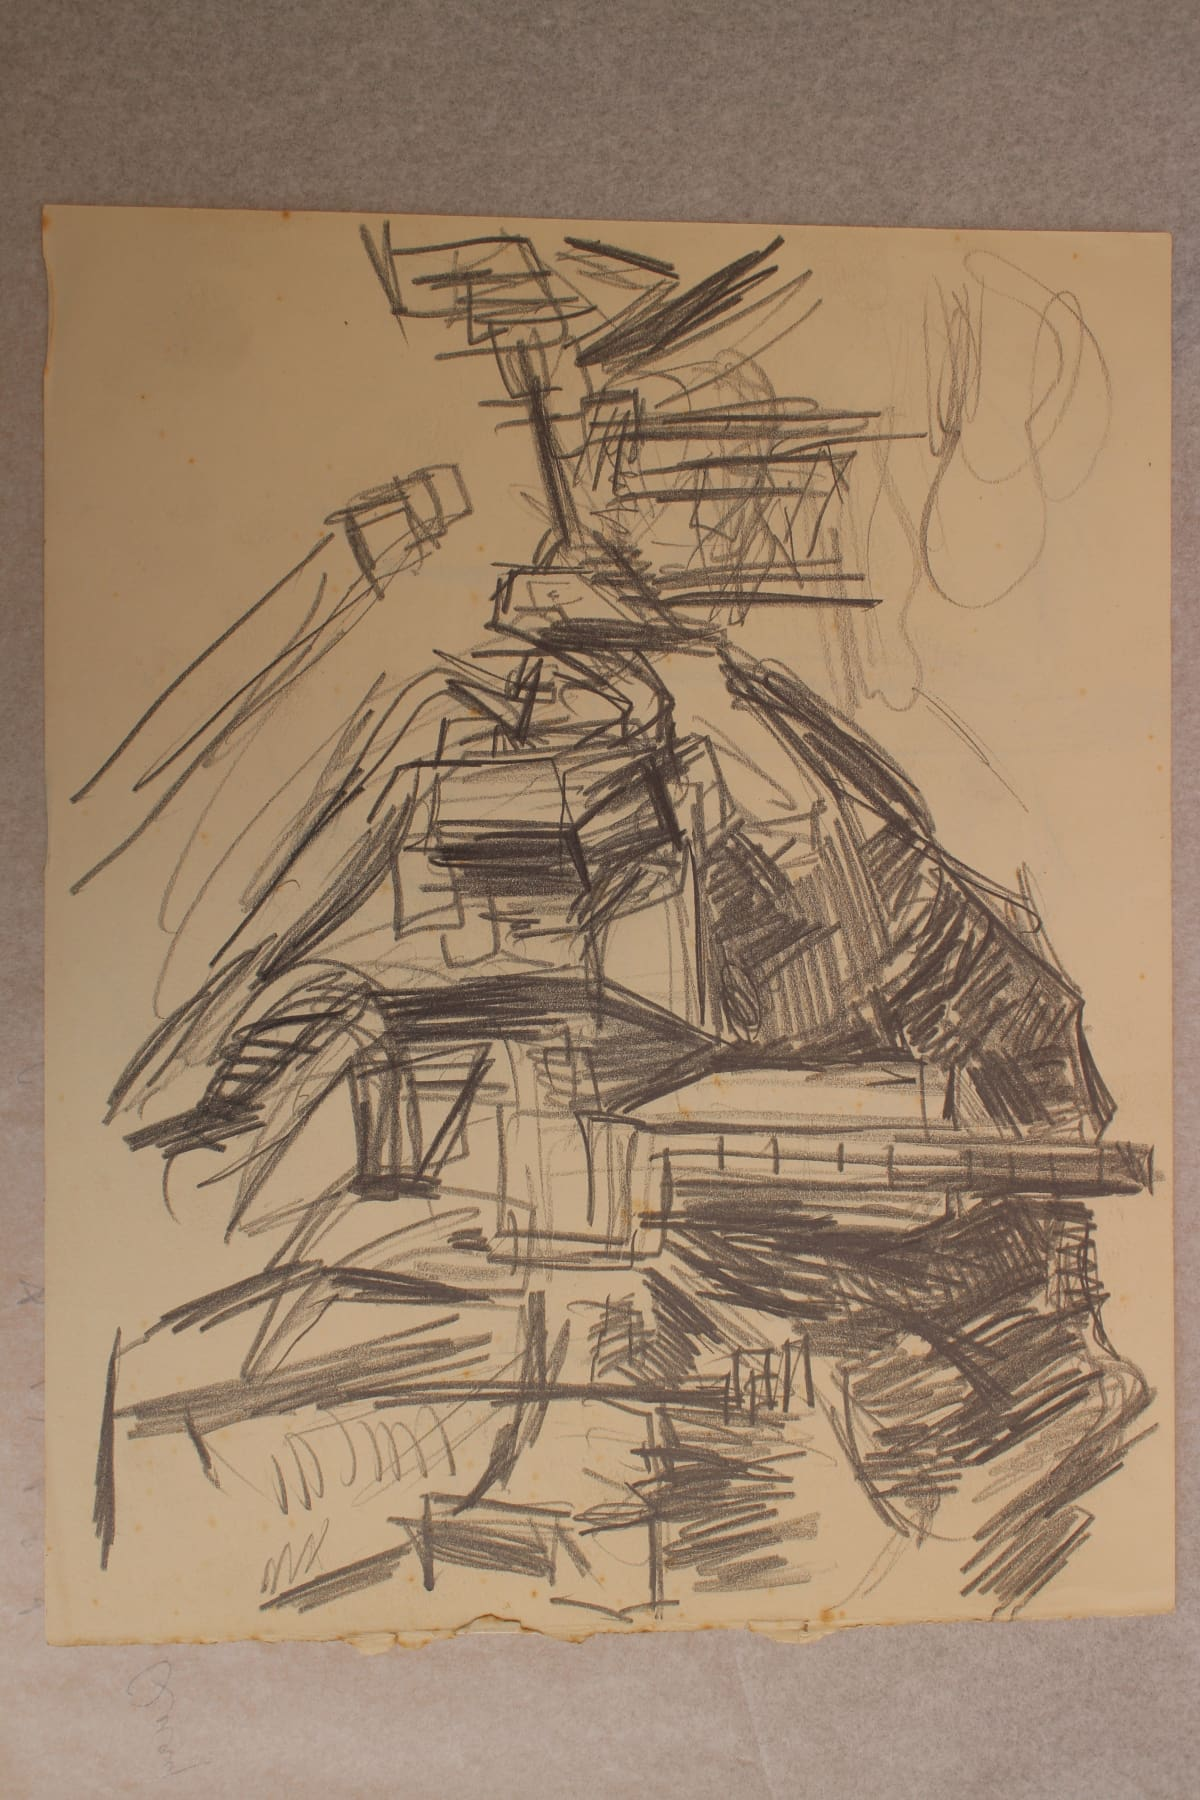 Mountford Tosswill Woollaston  Down on the Quay, Greymouth, 1959  Pencil on paper  9.8 x 12.2 in 25 x 31 cm